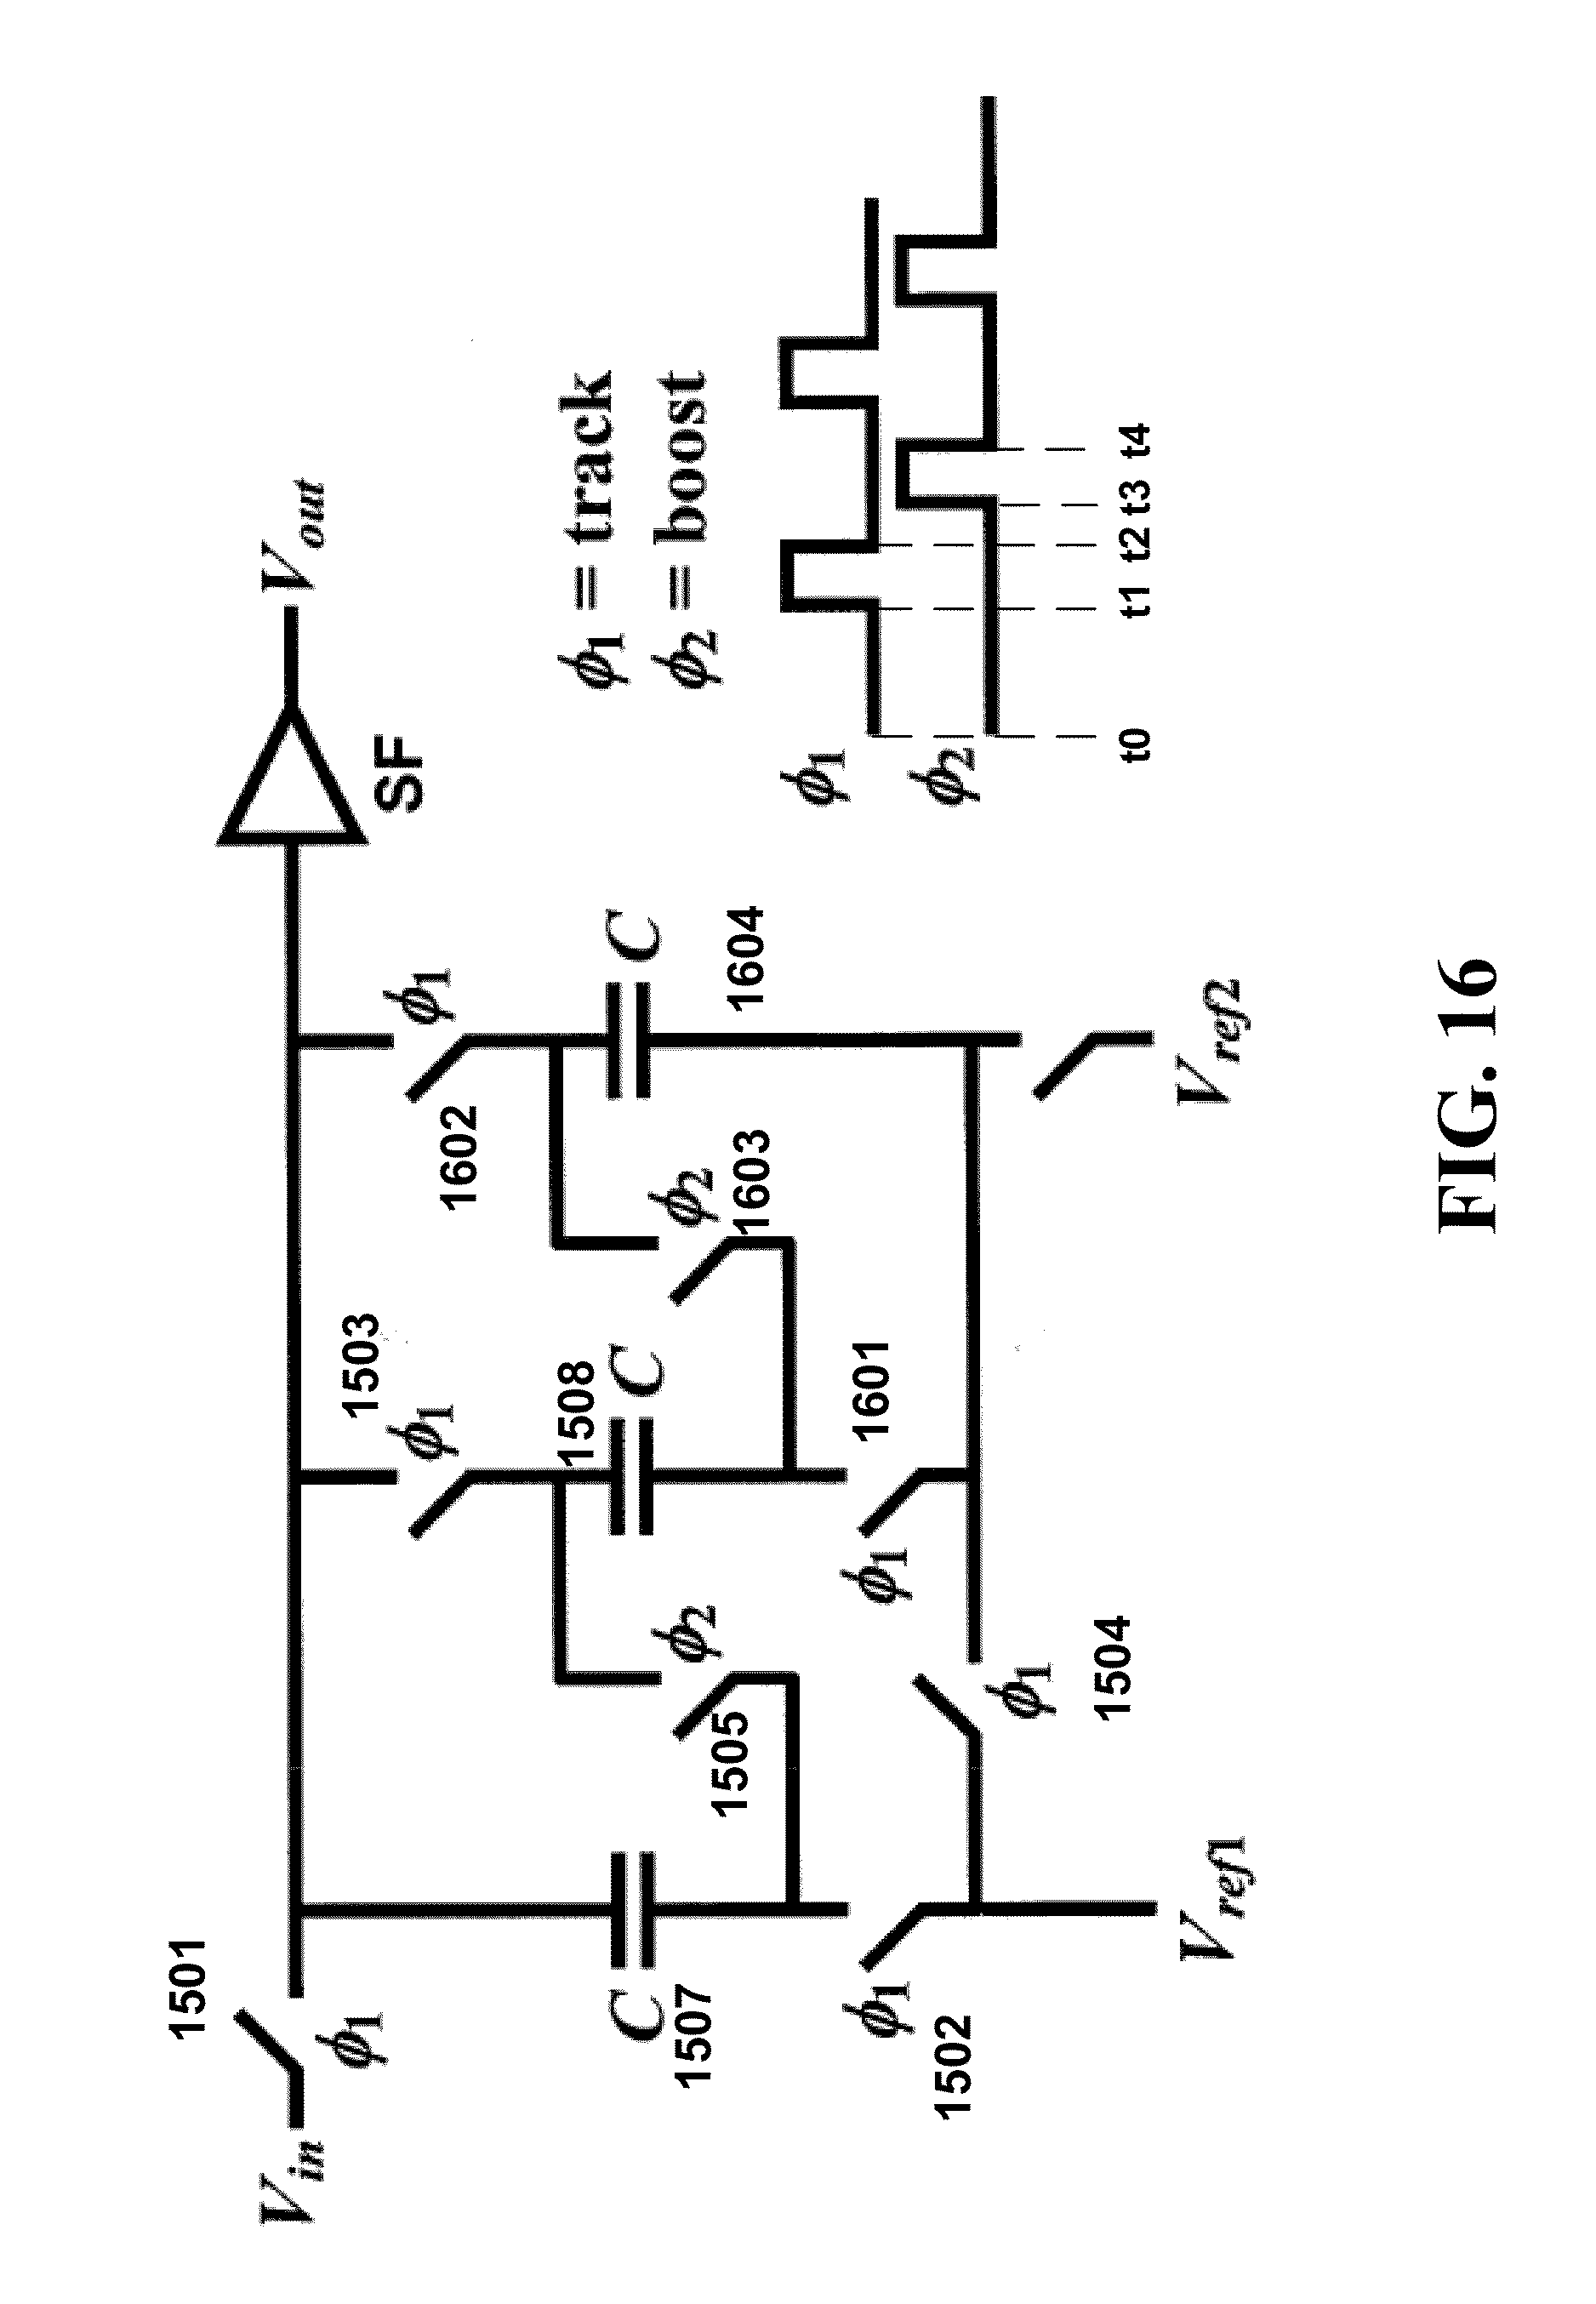 Patent Us20120001615 Array Column Integrator Google Patents Circuit Showing How A Virtual Ground Can Be Used To Enable Single Drawing